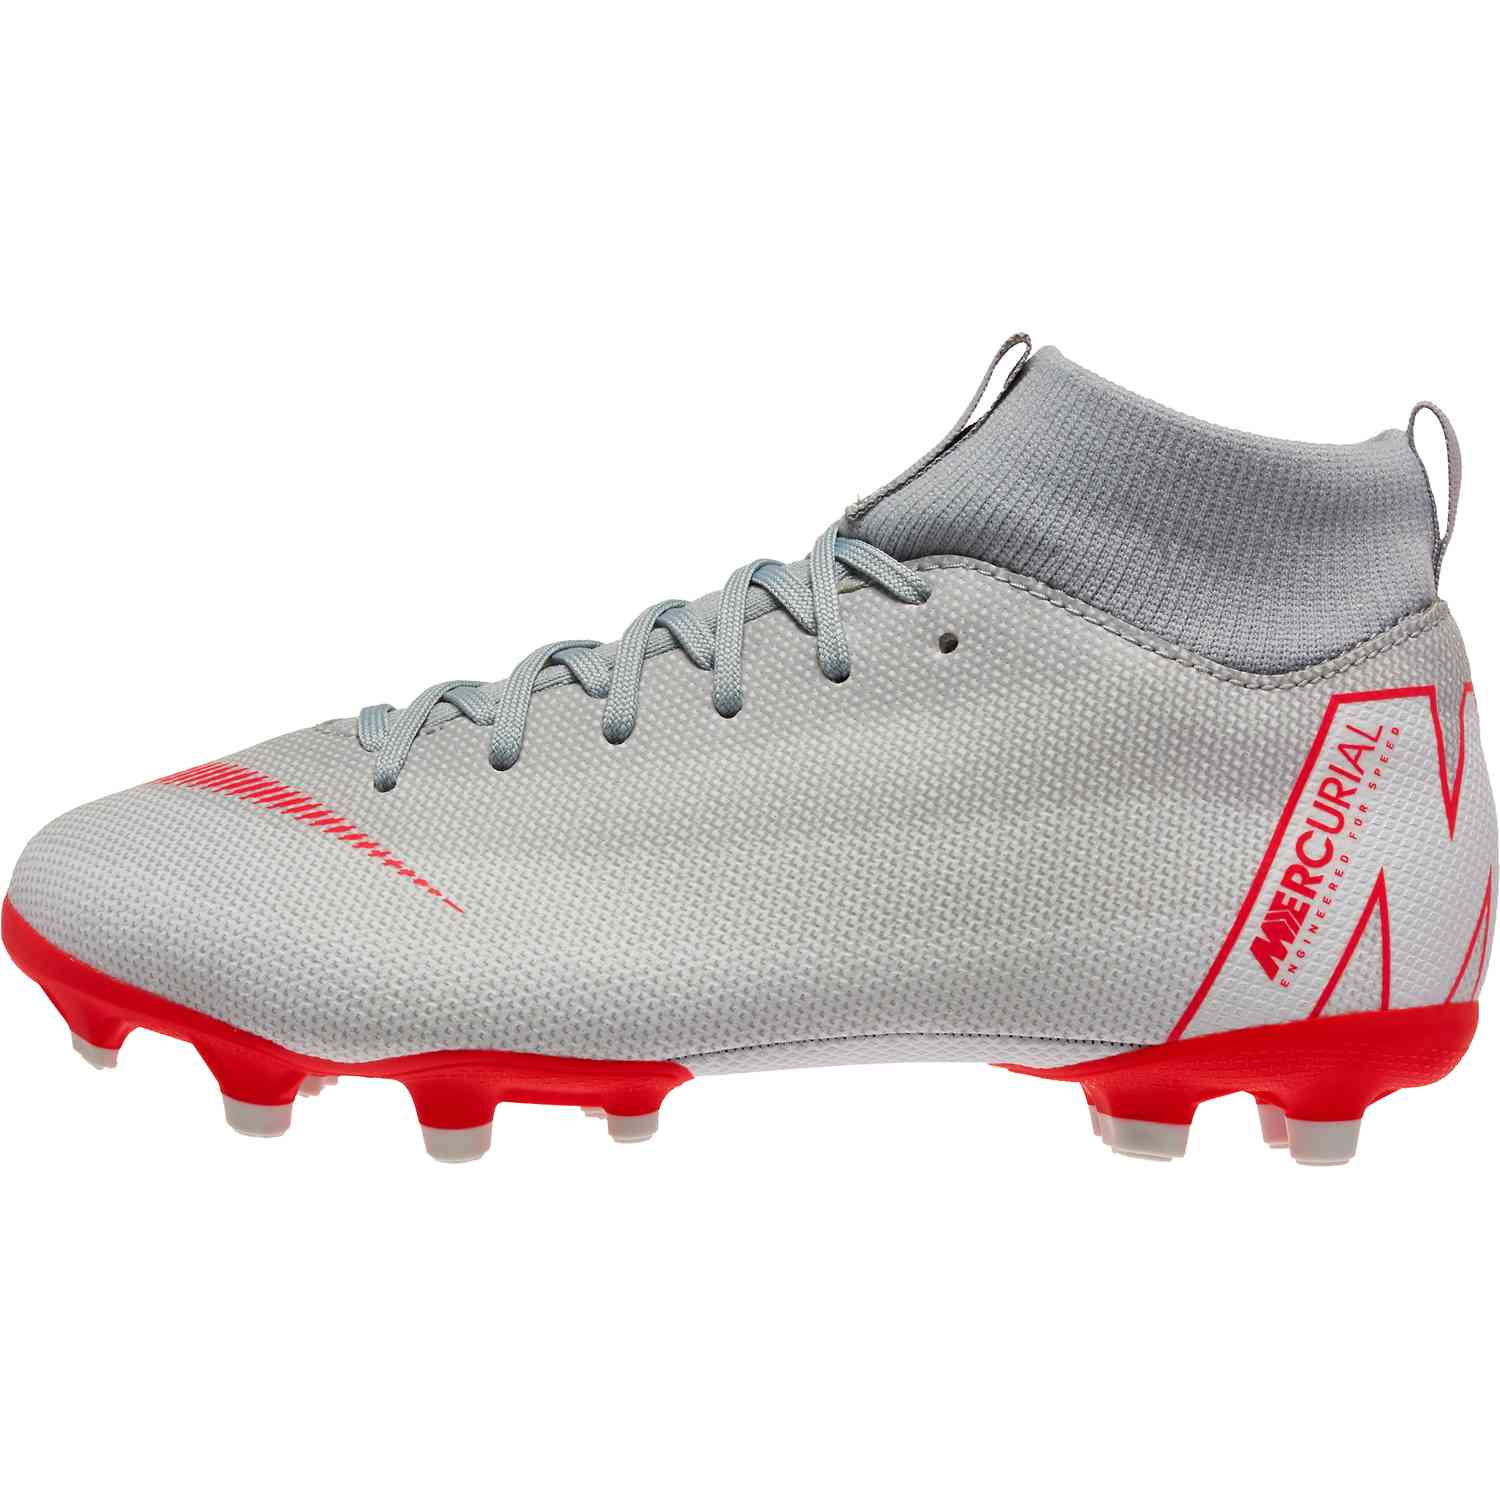 timeless design 116a4 95bc4 Kids Nike Mercurial Superfly 6 Academy MG - Wolf Grey/Light Crimson/Pure  Platinum - Soccer Master